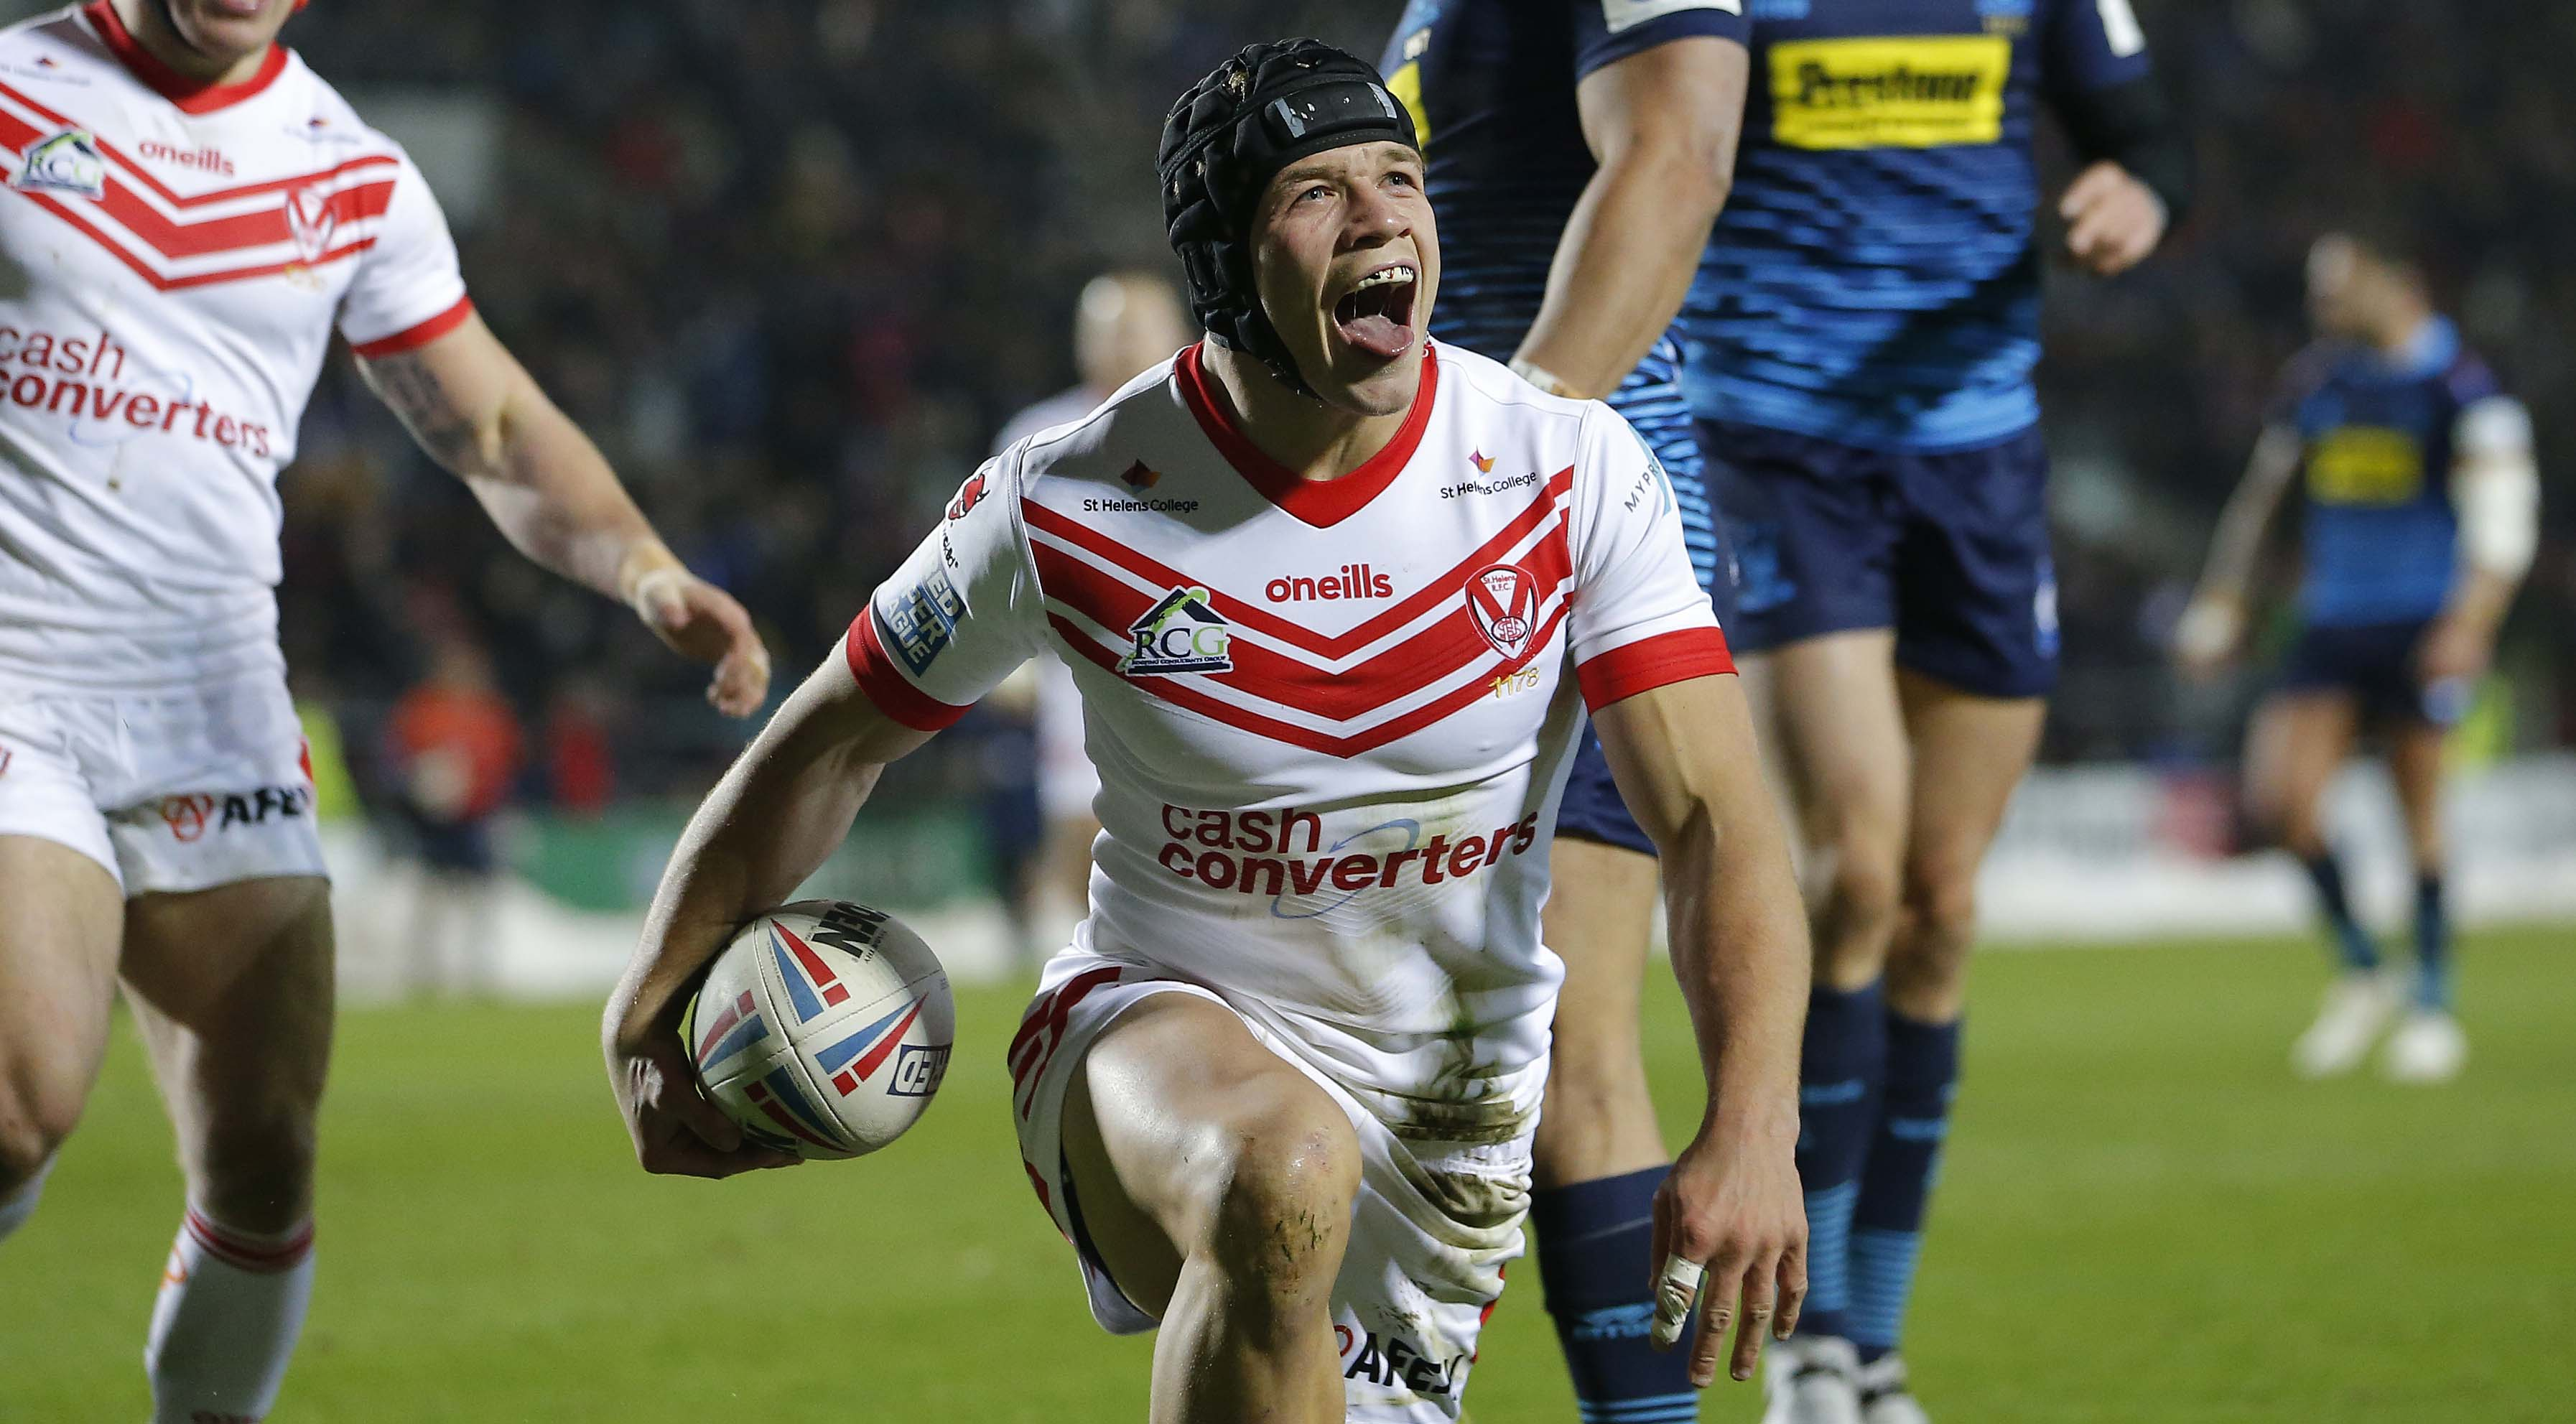 Challenge Cup Final Preview with Coral